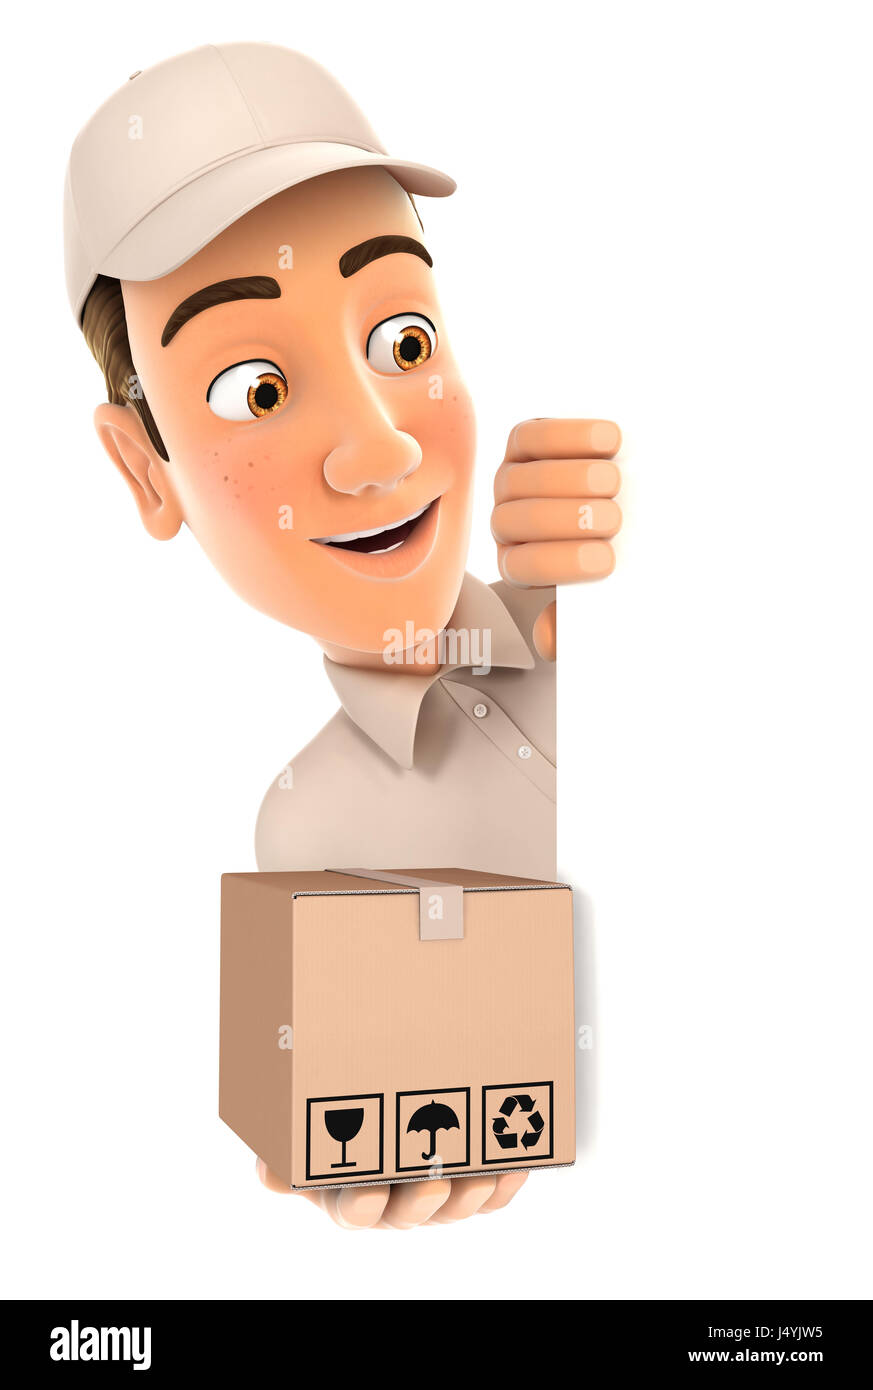 3d delivery man behind left wall and holding package, illustration with isolated white background Stock Photo